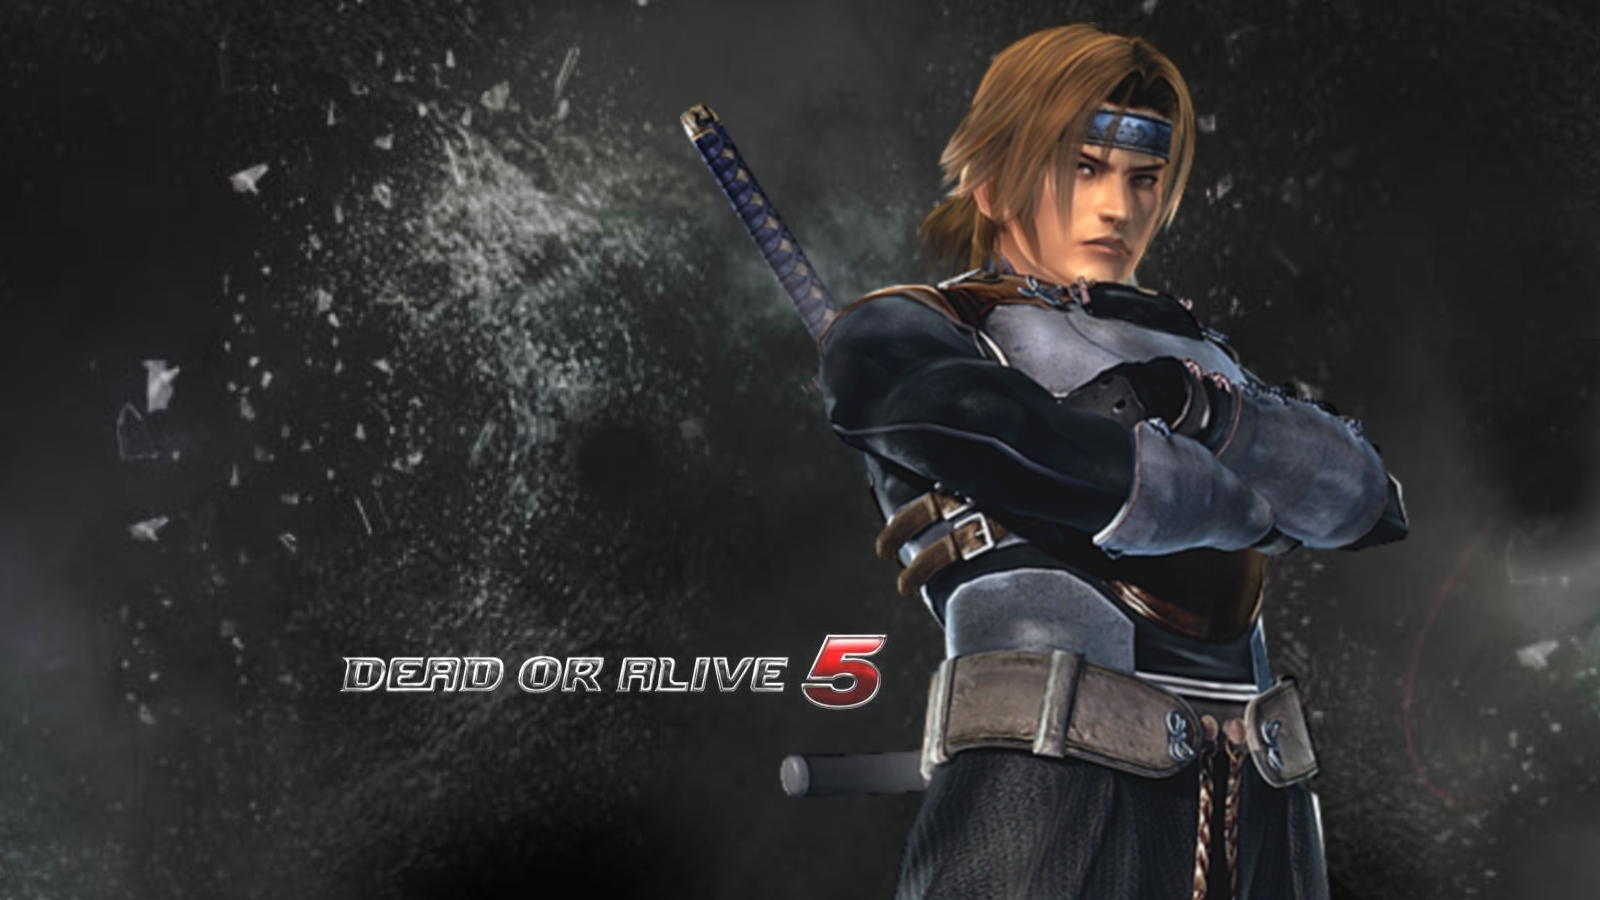 images of hayate dead or alive 5 wallpaper wallpaper 1600x900